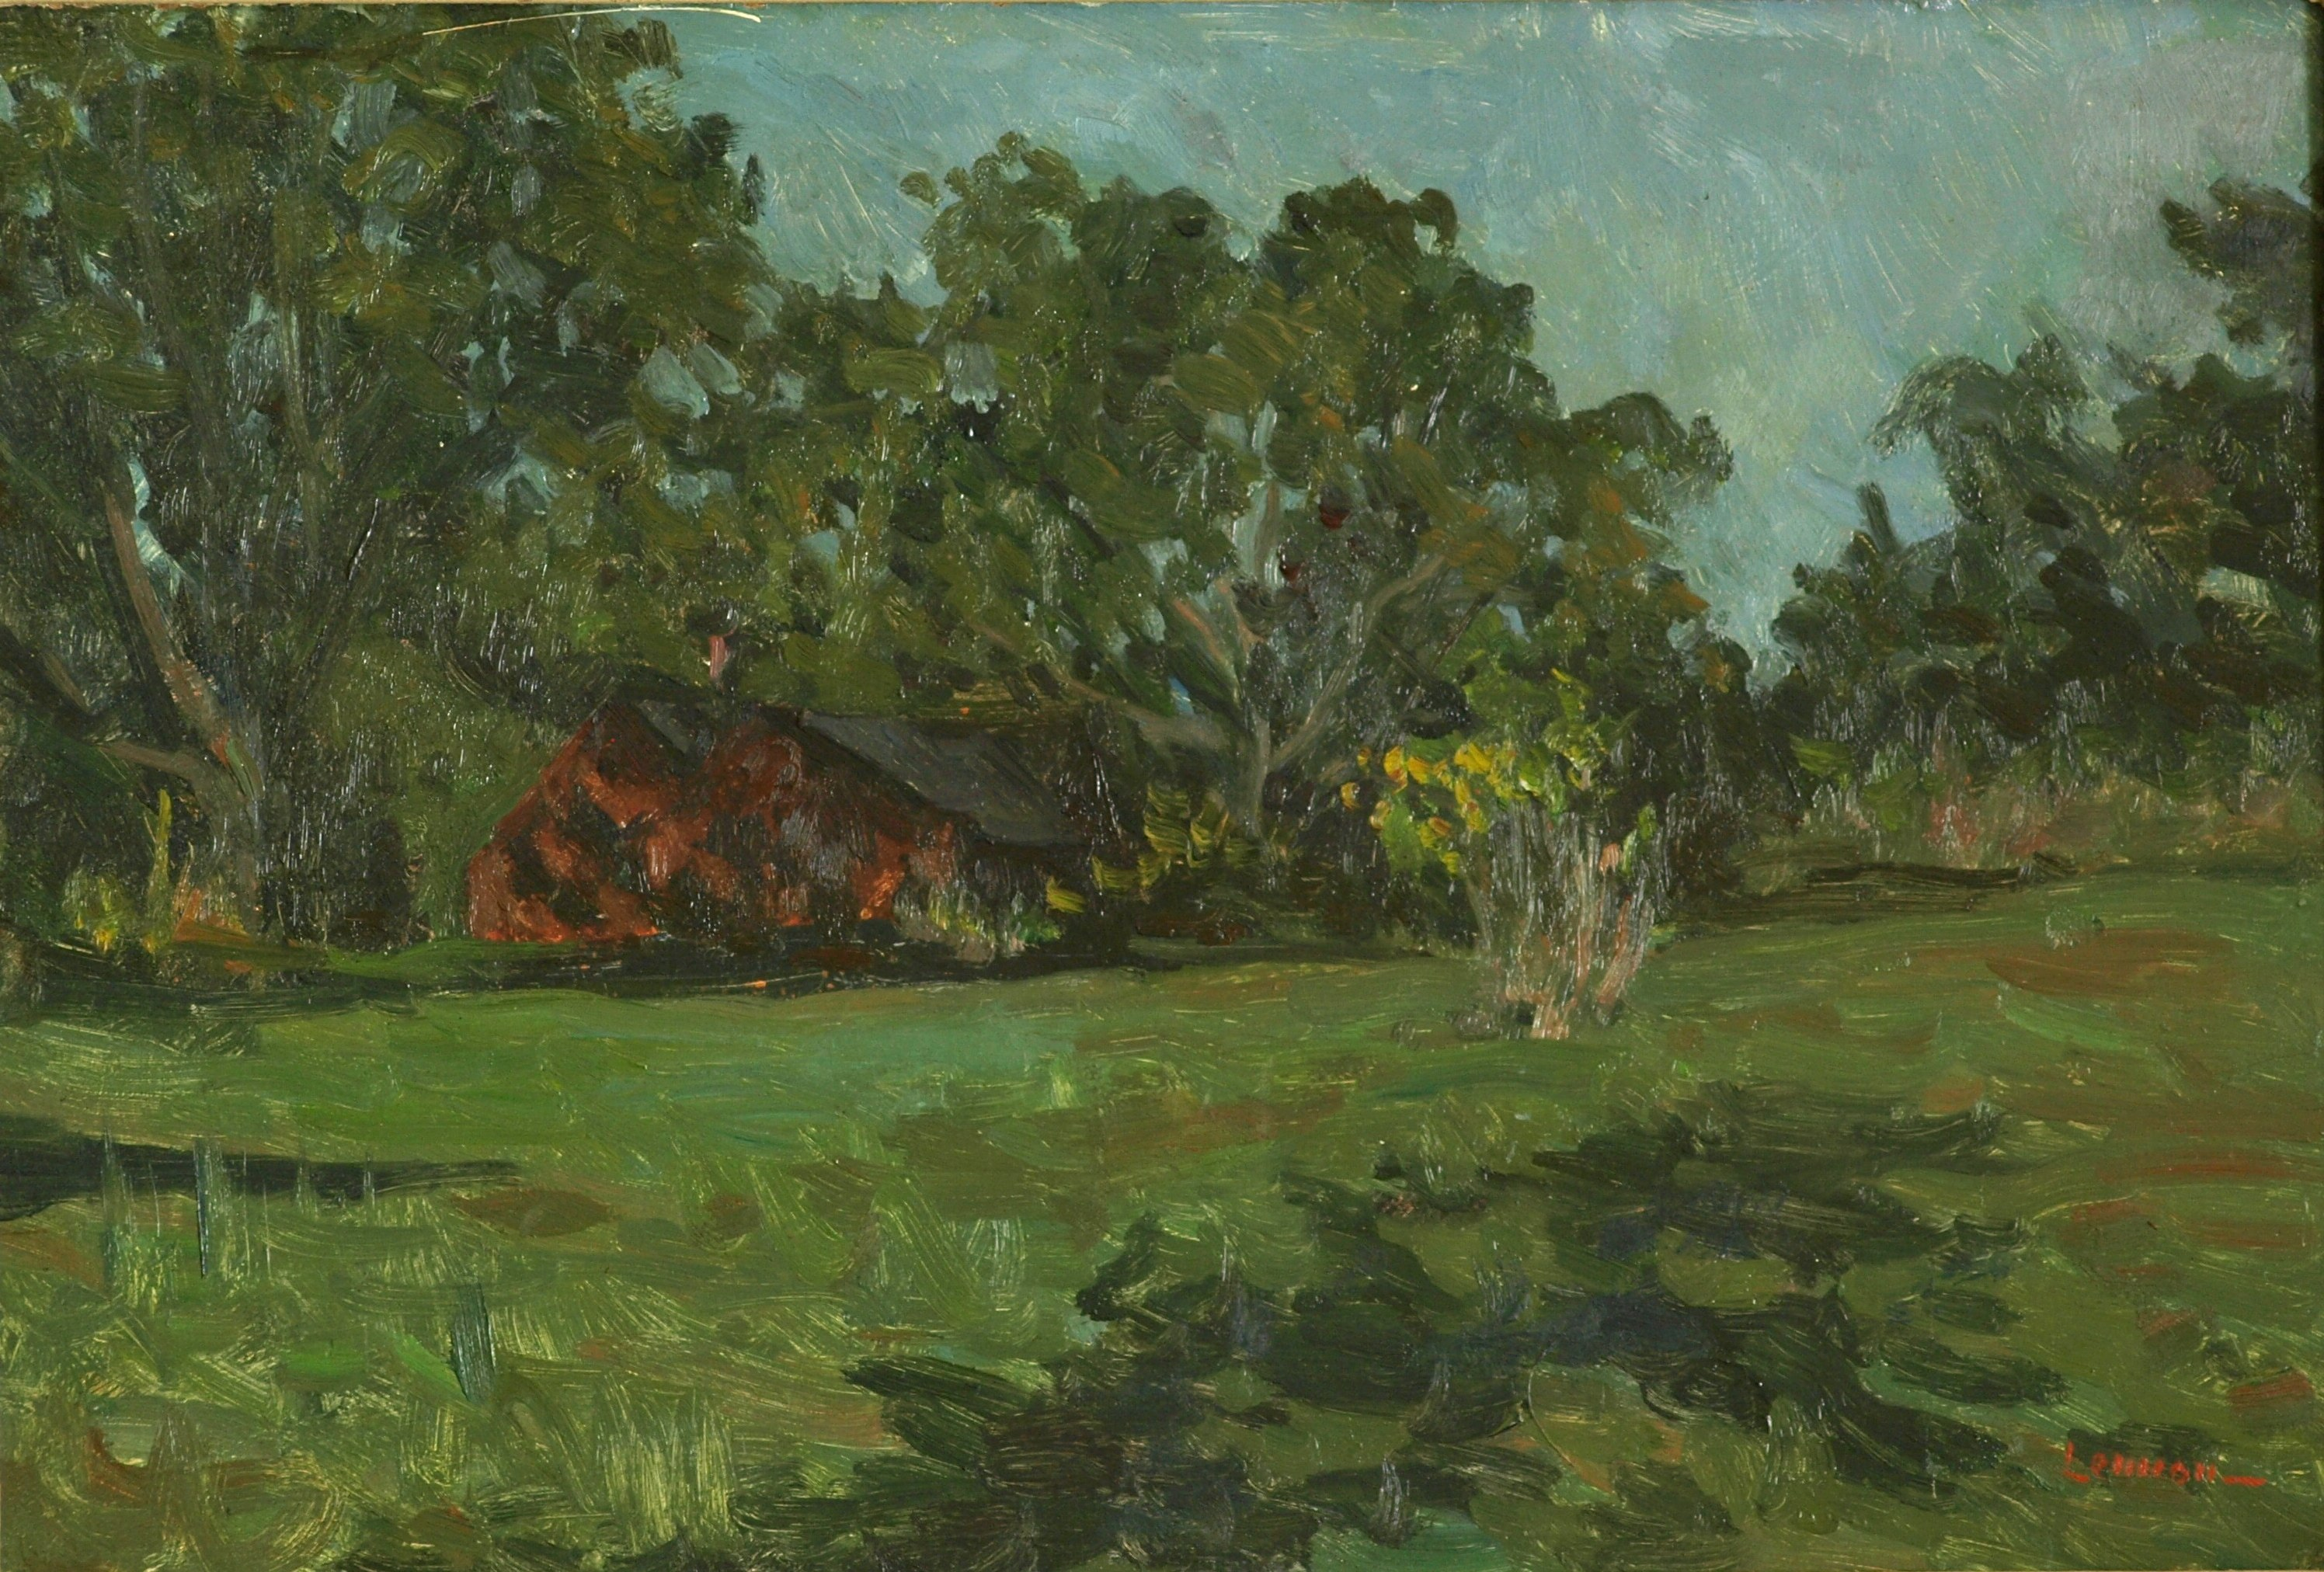 New England Summer, Oil on Panel, 16 x 24 Inches, by Bernard Lennon, $675